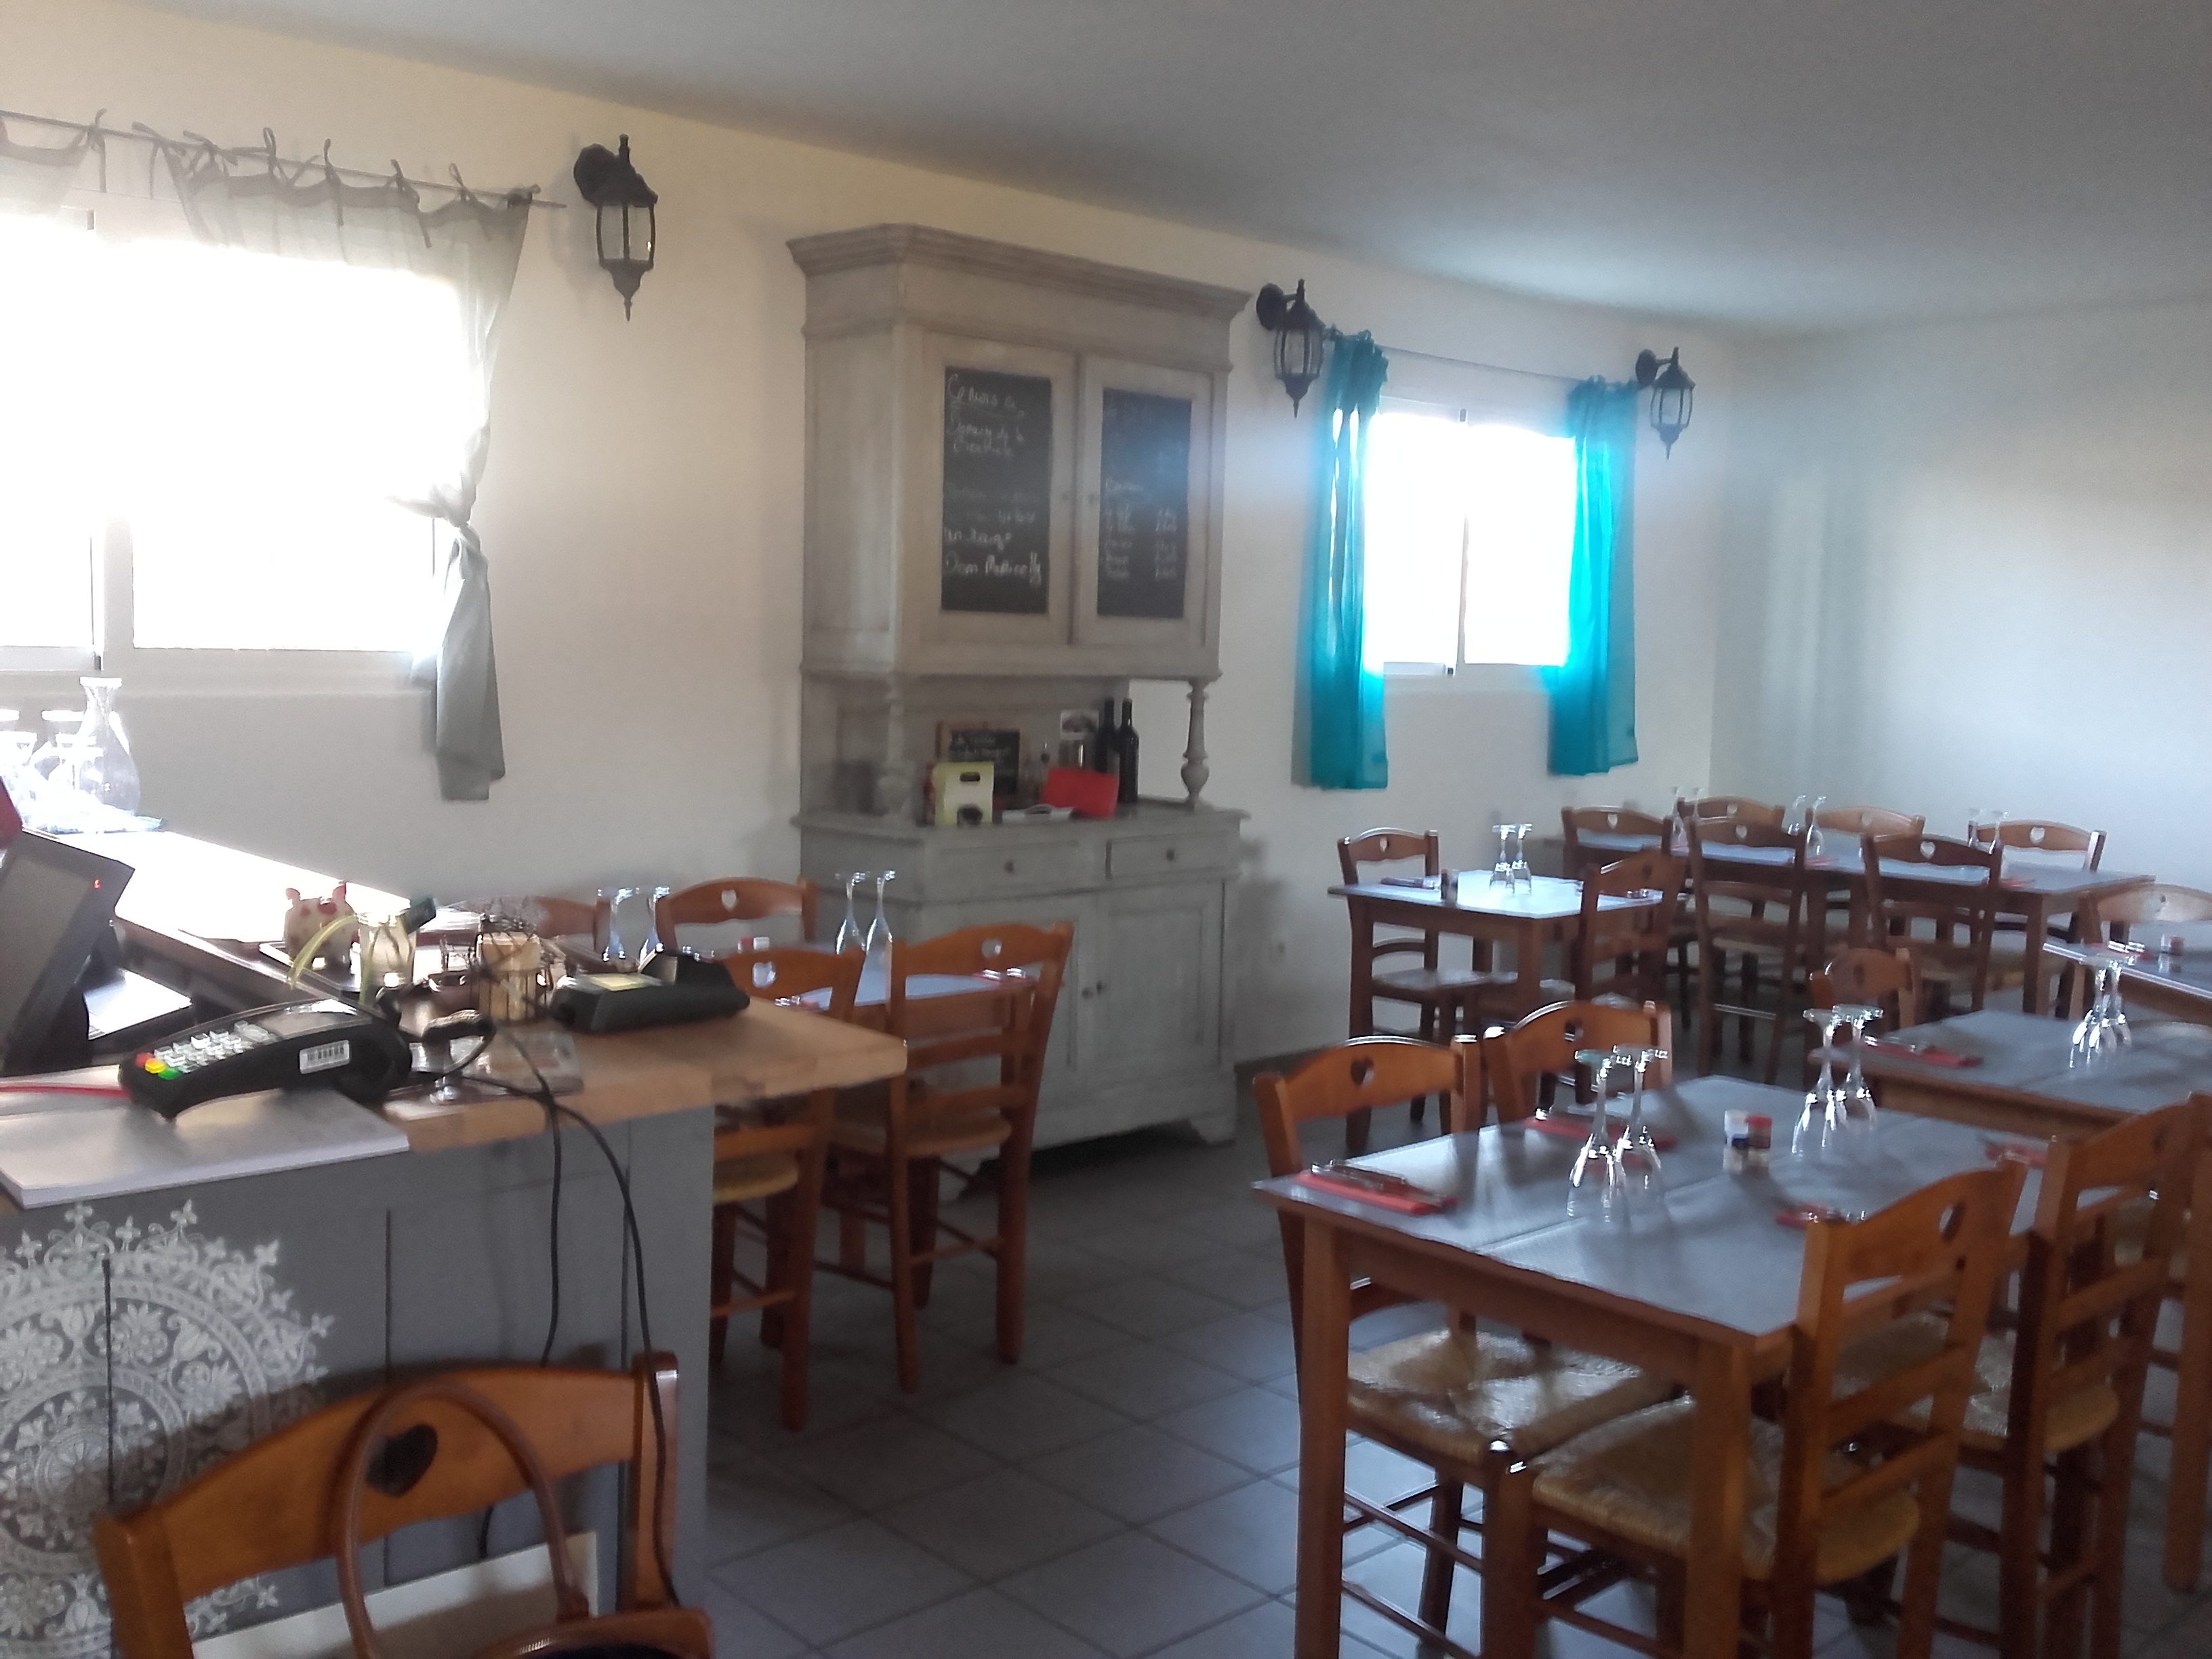 Restaurant La Tablee Camaret-sur-aigues